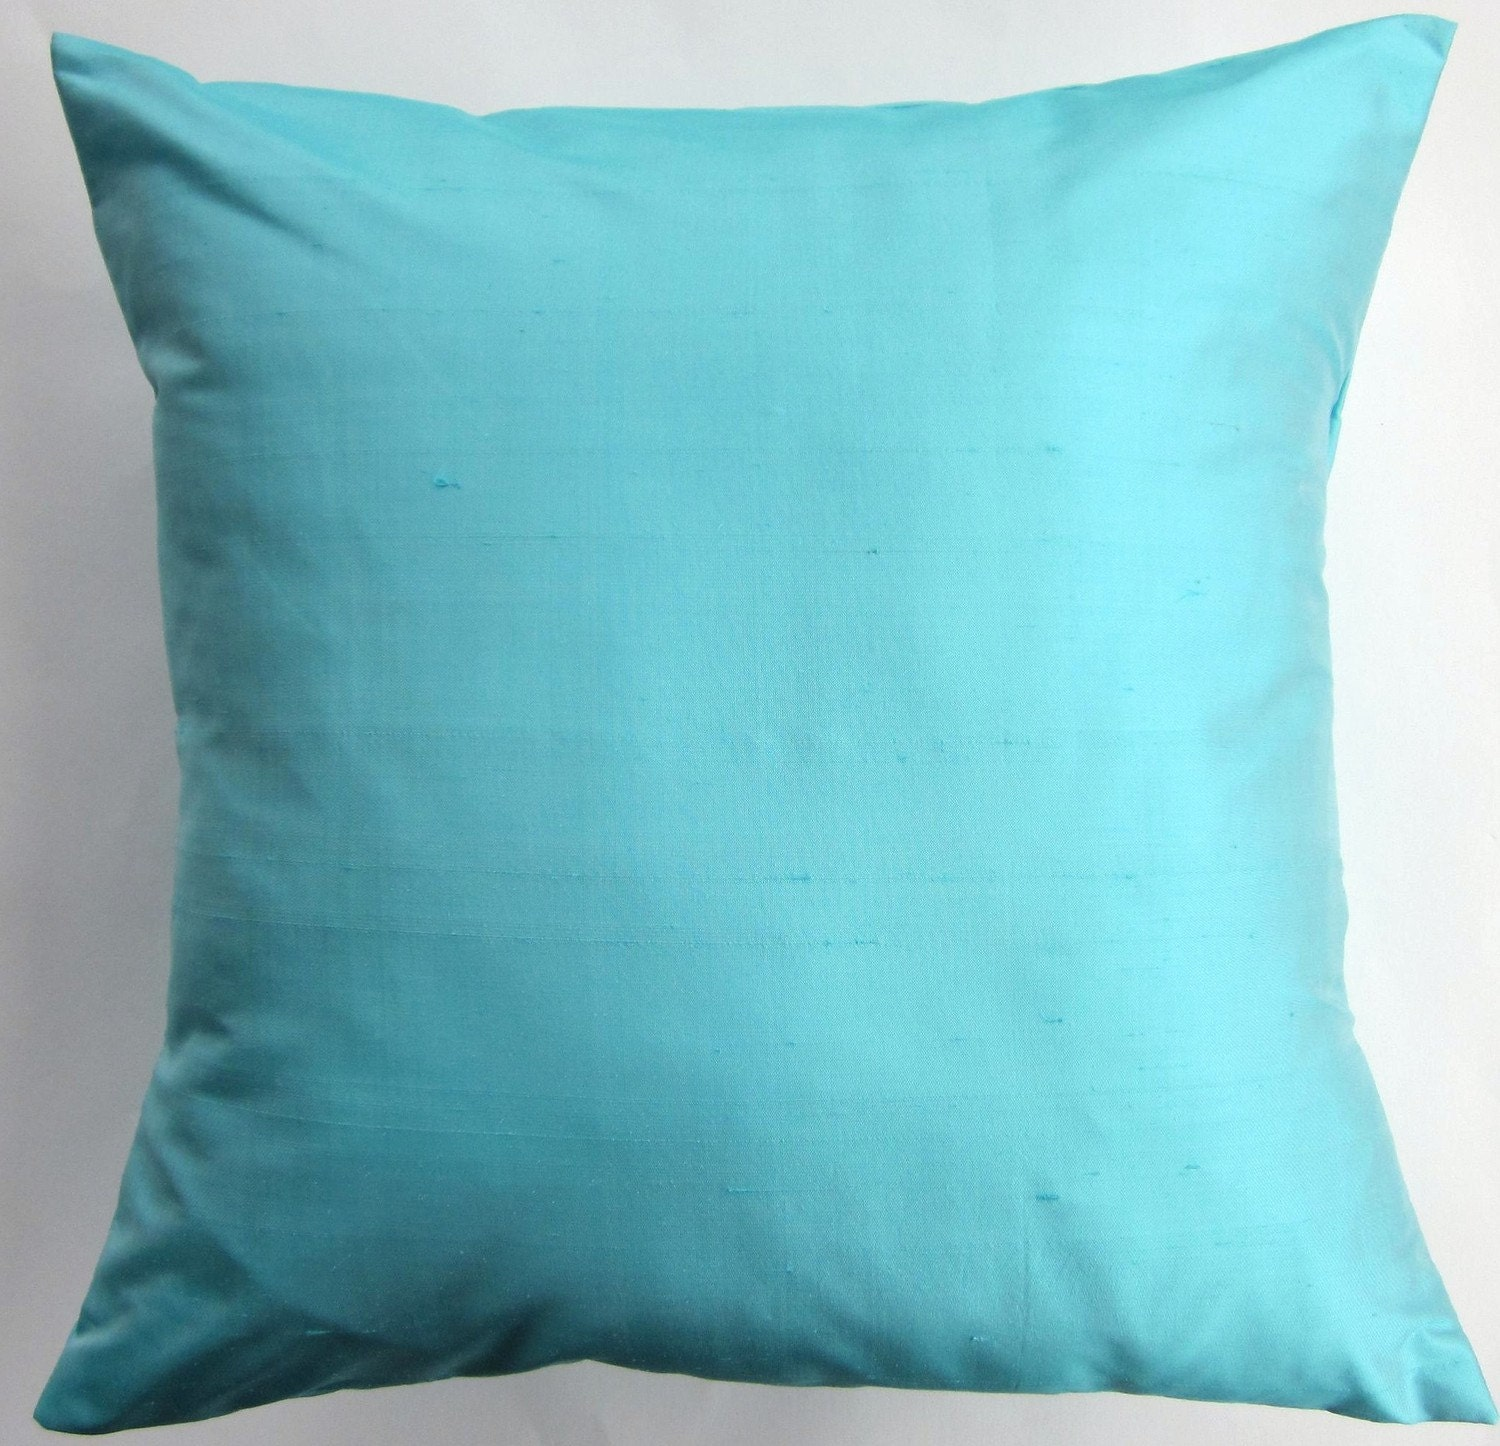 Pale Aqua Throw Pillow : Light Turquoise Silk Pillow Cover Aqua Throw by sassypillows